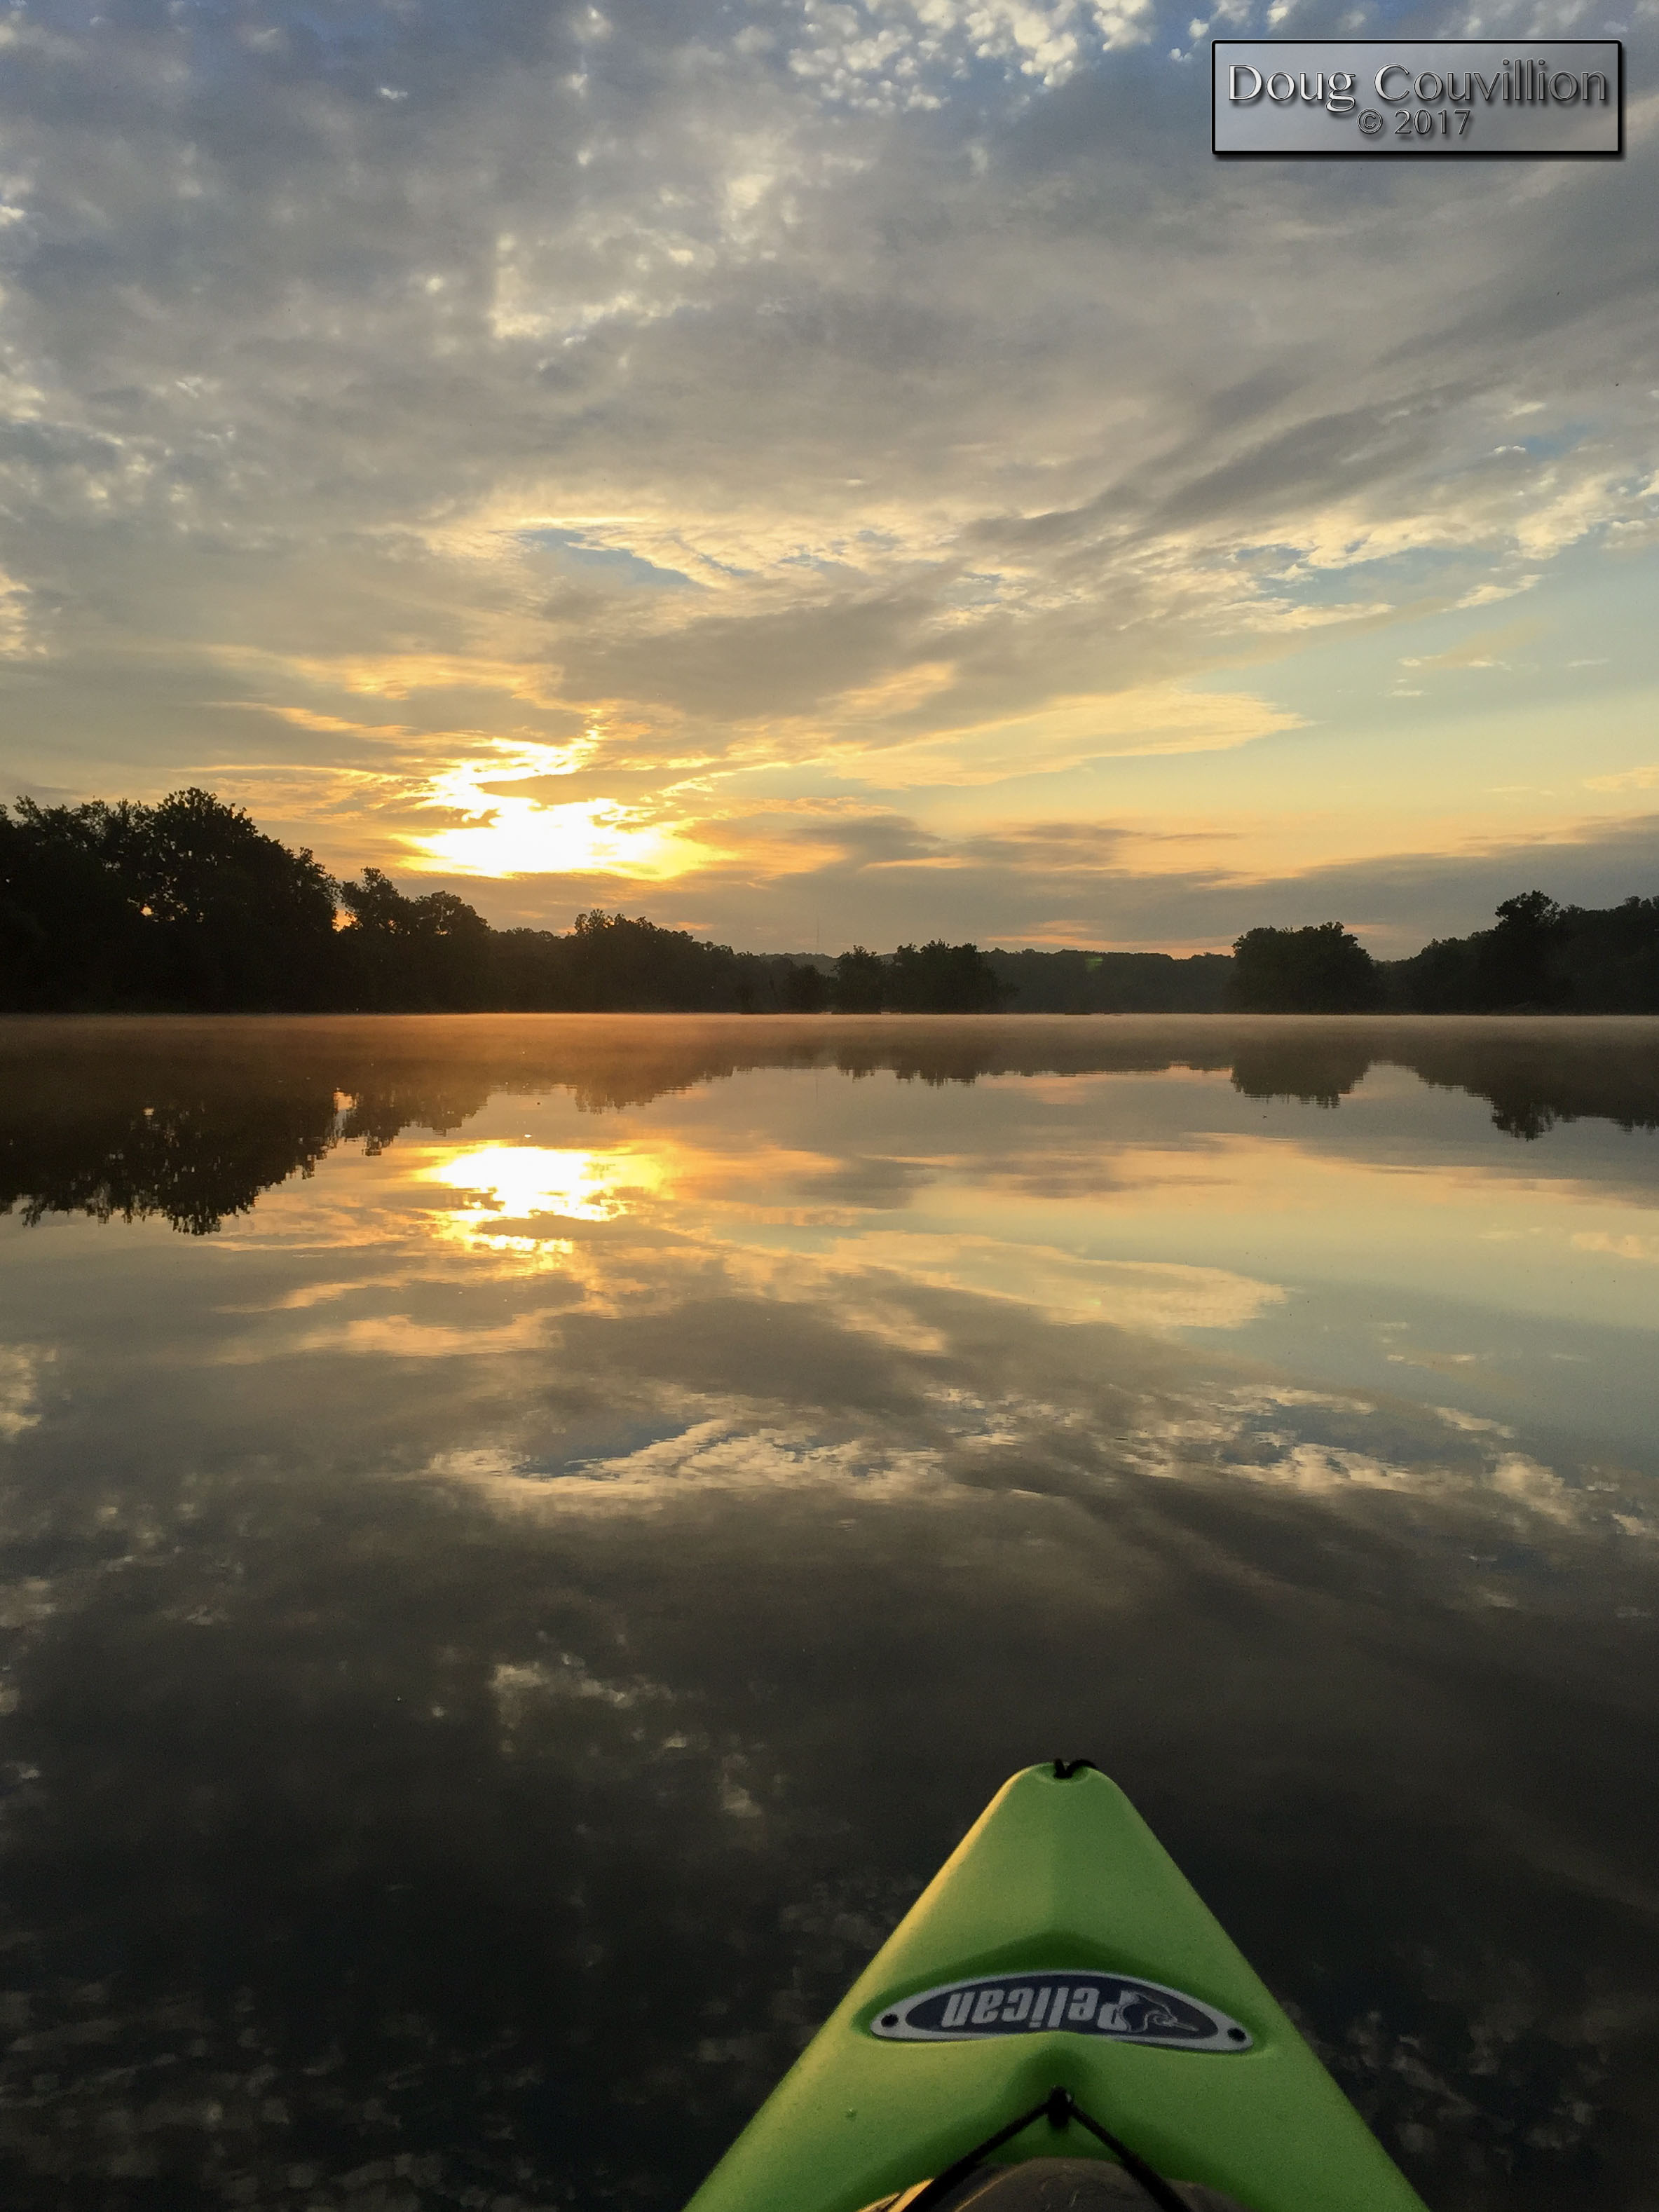 photograph of sunrise on the James River from a kayak by Doug Couvillion